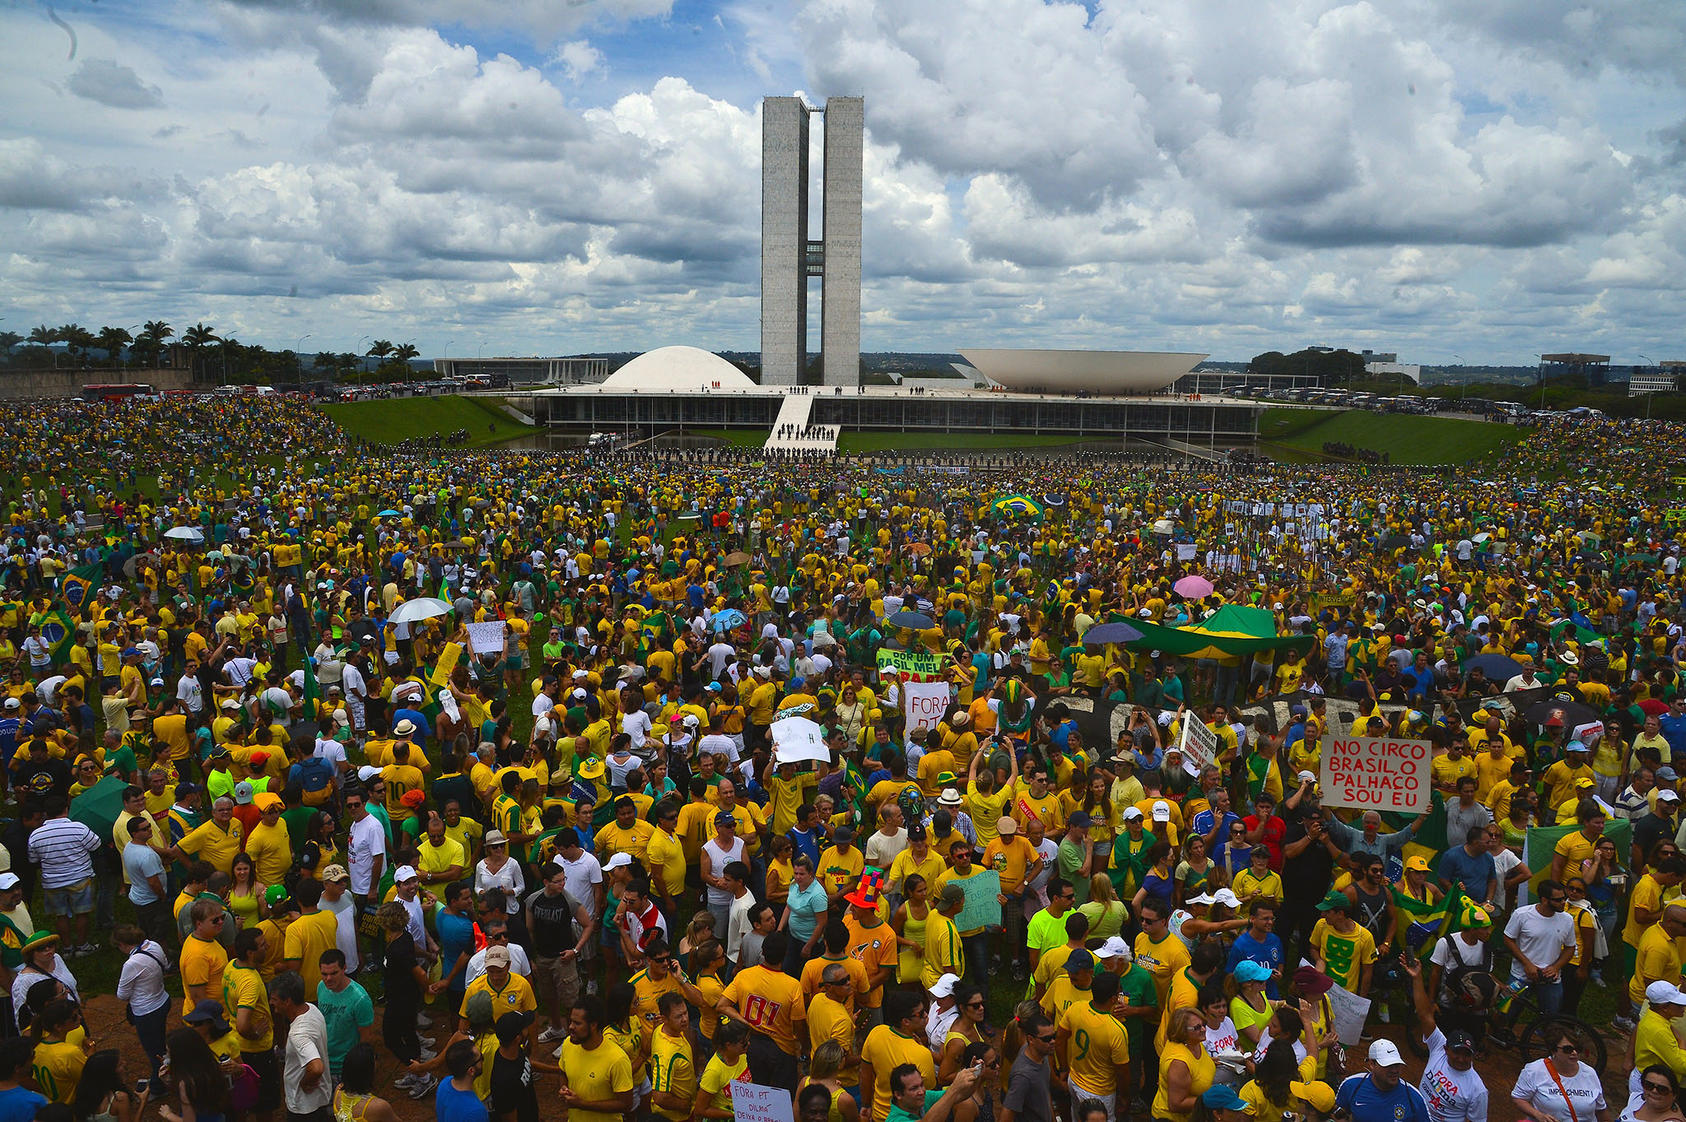 Thousands of Brazilians gather outside the National Congress Building in Brasília to protest government corruption, March 15, 2015. (José Cruz/Agência Brasil)